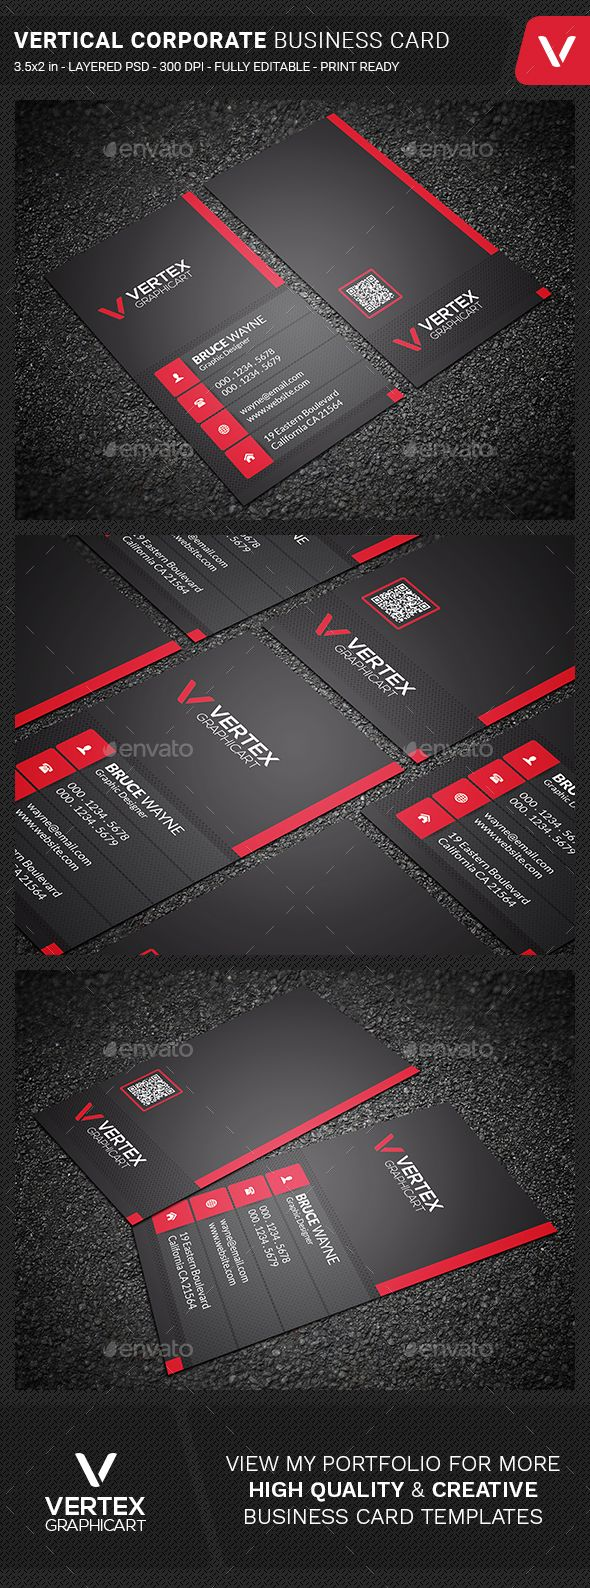 Vertical Corporate Business Card Design Template - Corporate Business Cards Design Template PSD. Download here: https://graphicriver.net/item/vertical-corporate-business-card/19361307?ref=yinkira